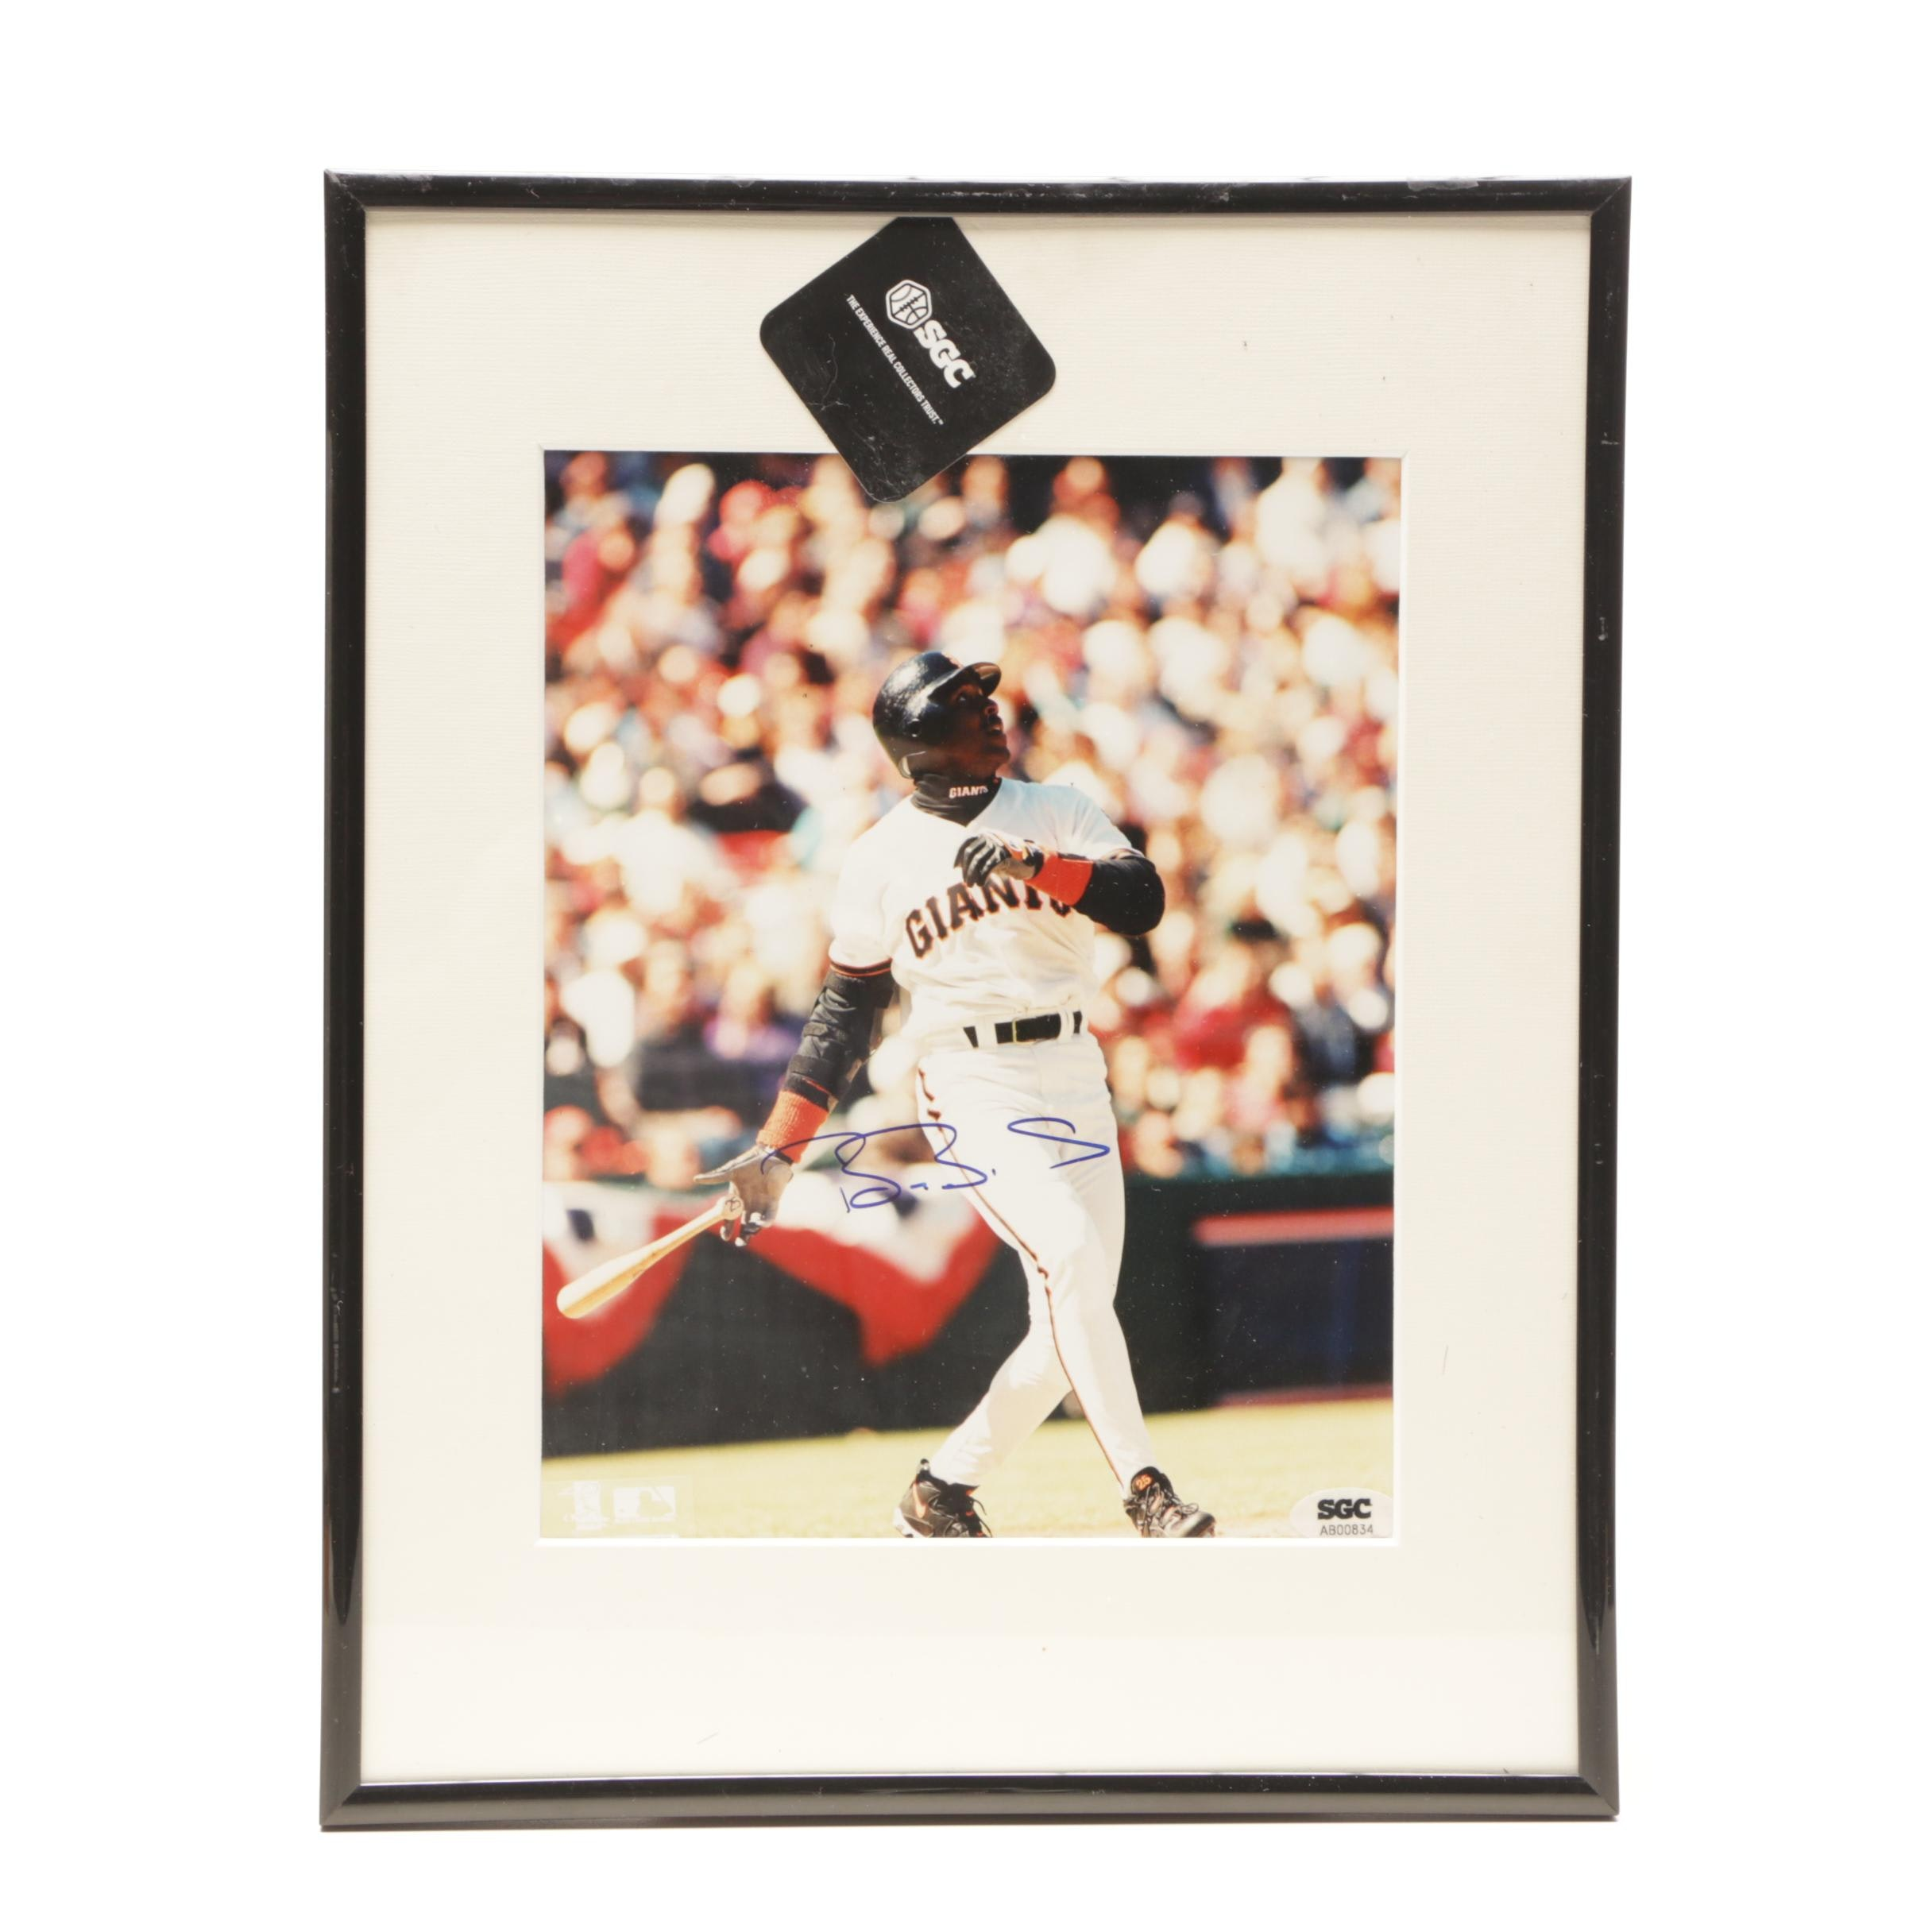 Barry Bonds Signed Framed and Matted San Francisco Baseball Photo Print SGC COA